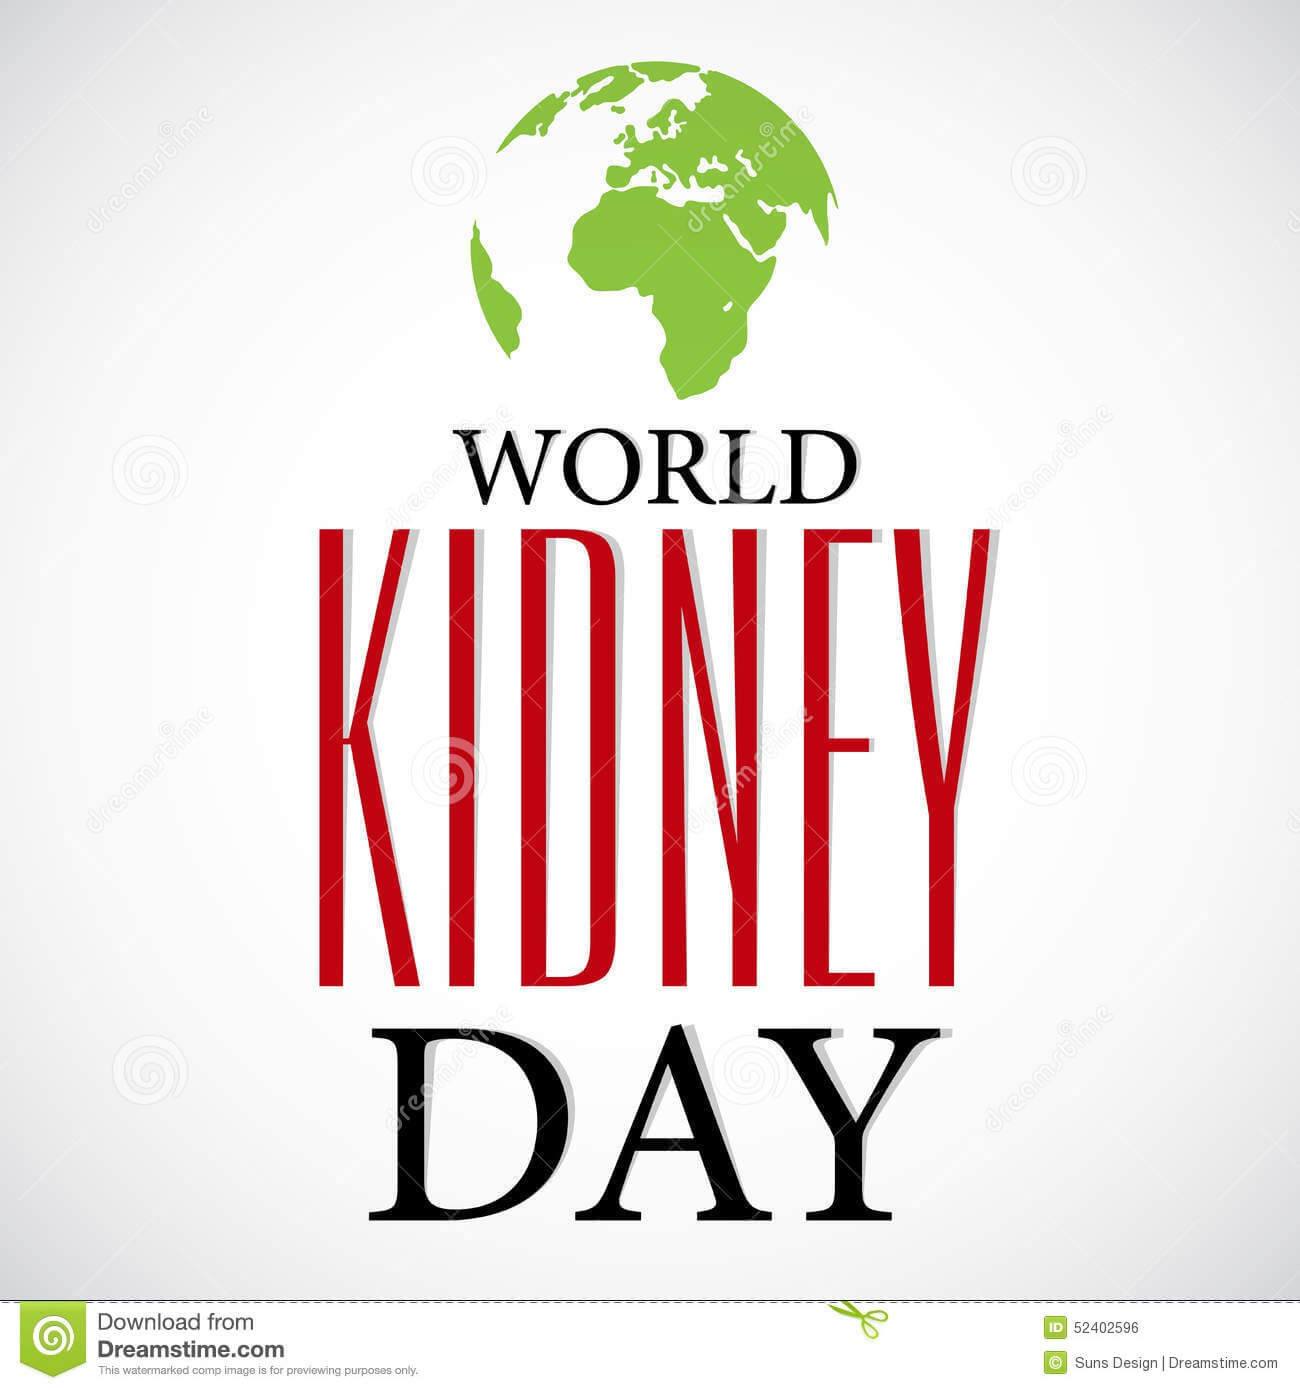 world kidney day vector illustration image